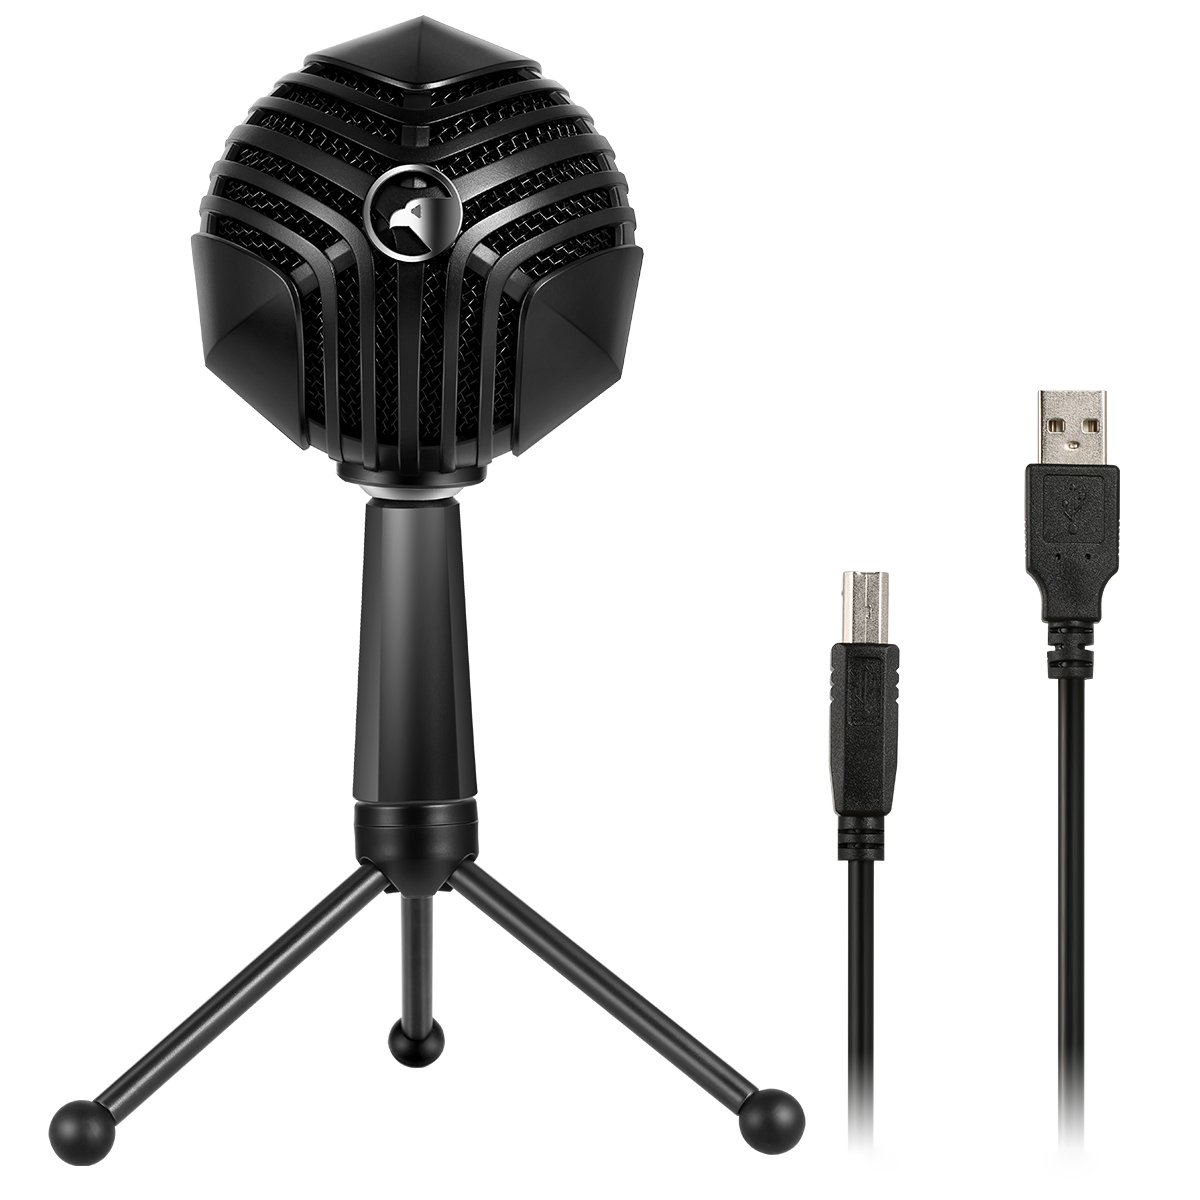 Persevere Condenser Microphone Gaming Mic, Multi-Pattern USB Recording Microphone, 360° Streamer Gamer Microphone for Computer, PC, Laptop, Mic for Recording, Gaming, Chatting, YouTube by persevere